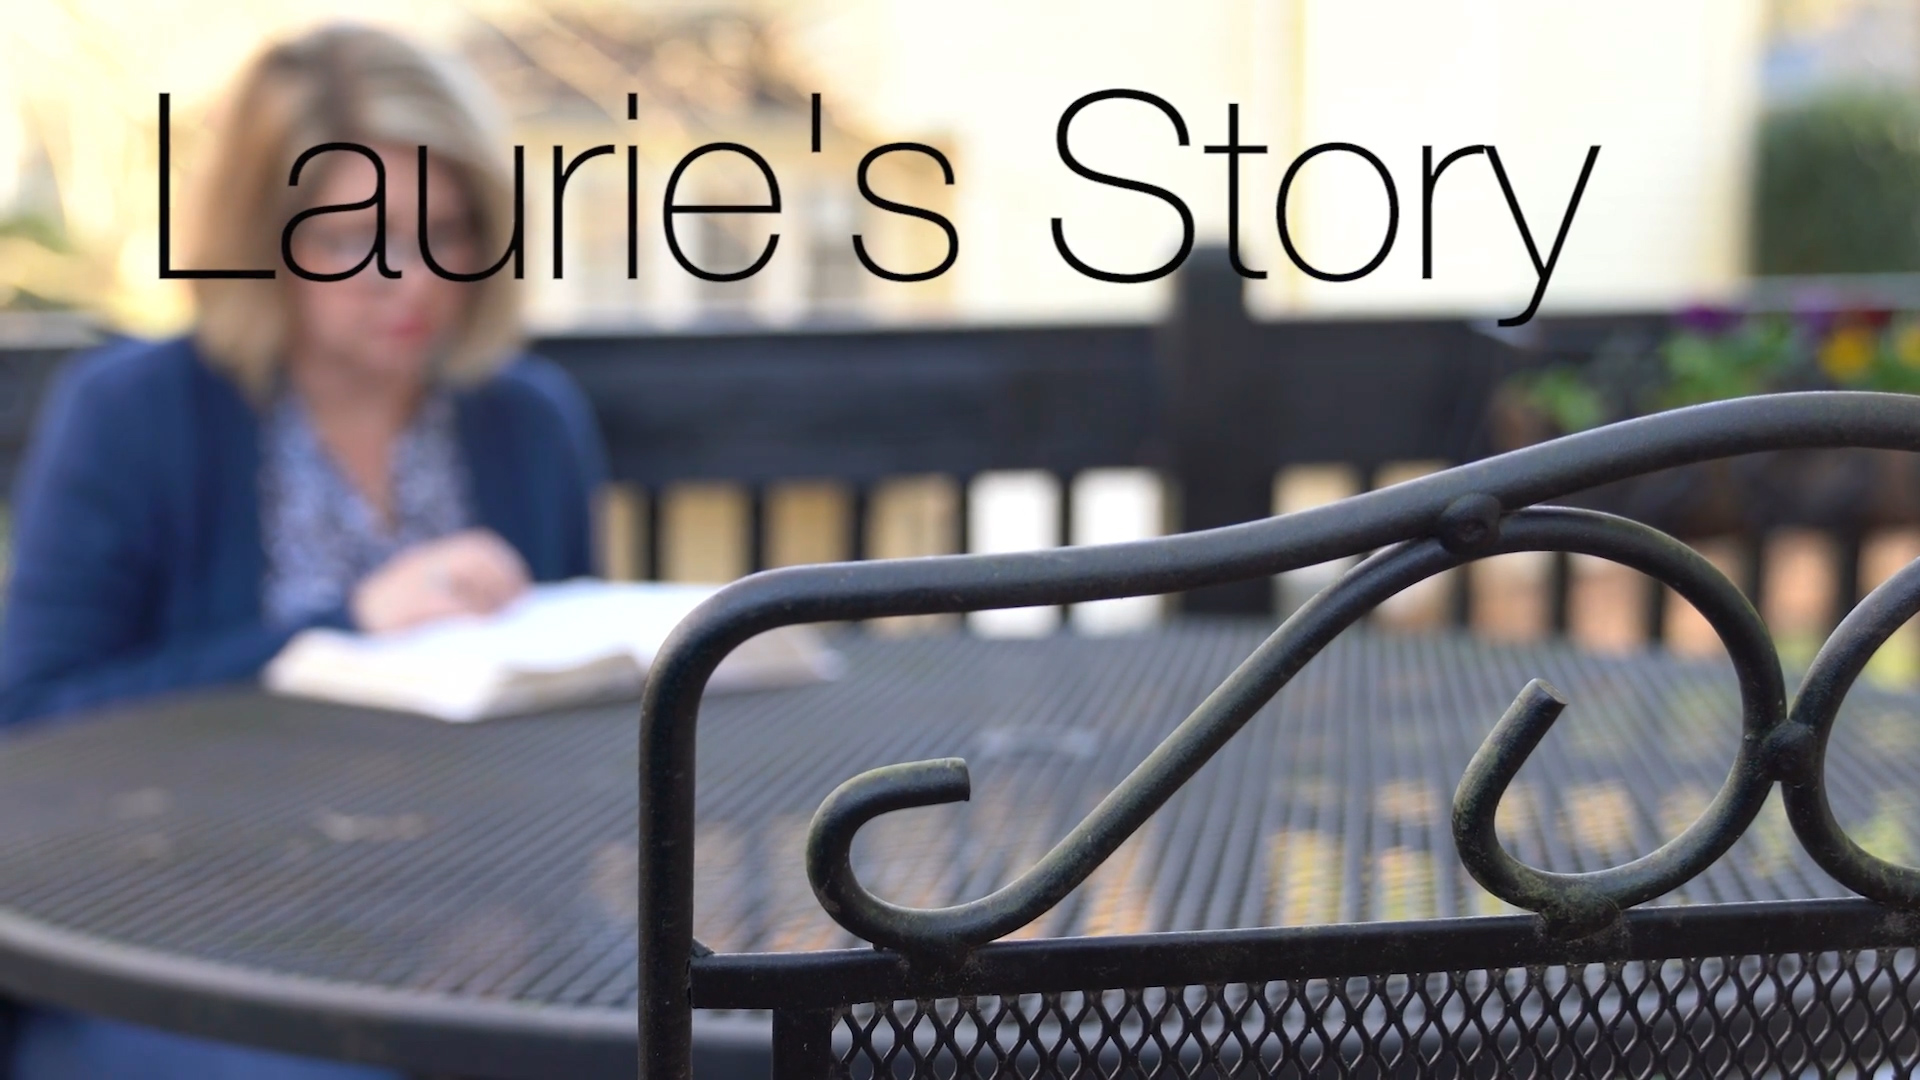 Laurie's Story